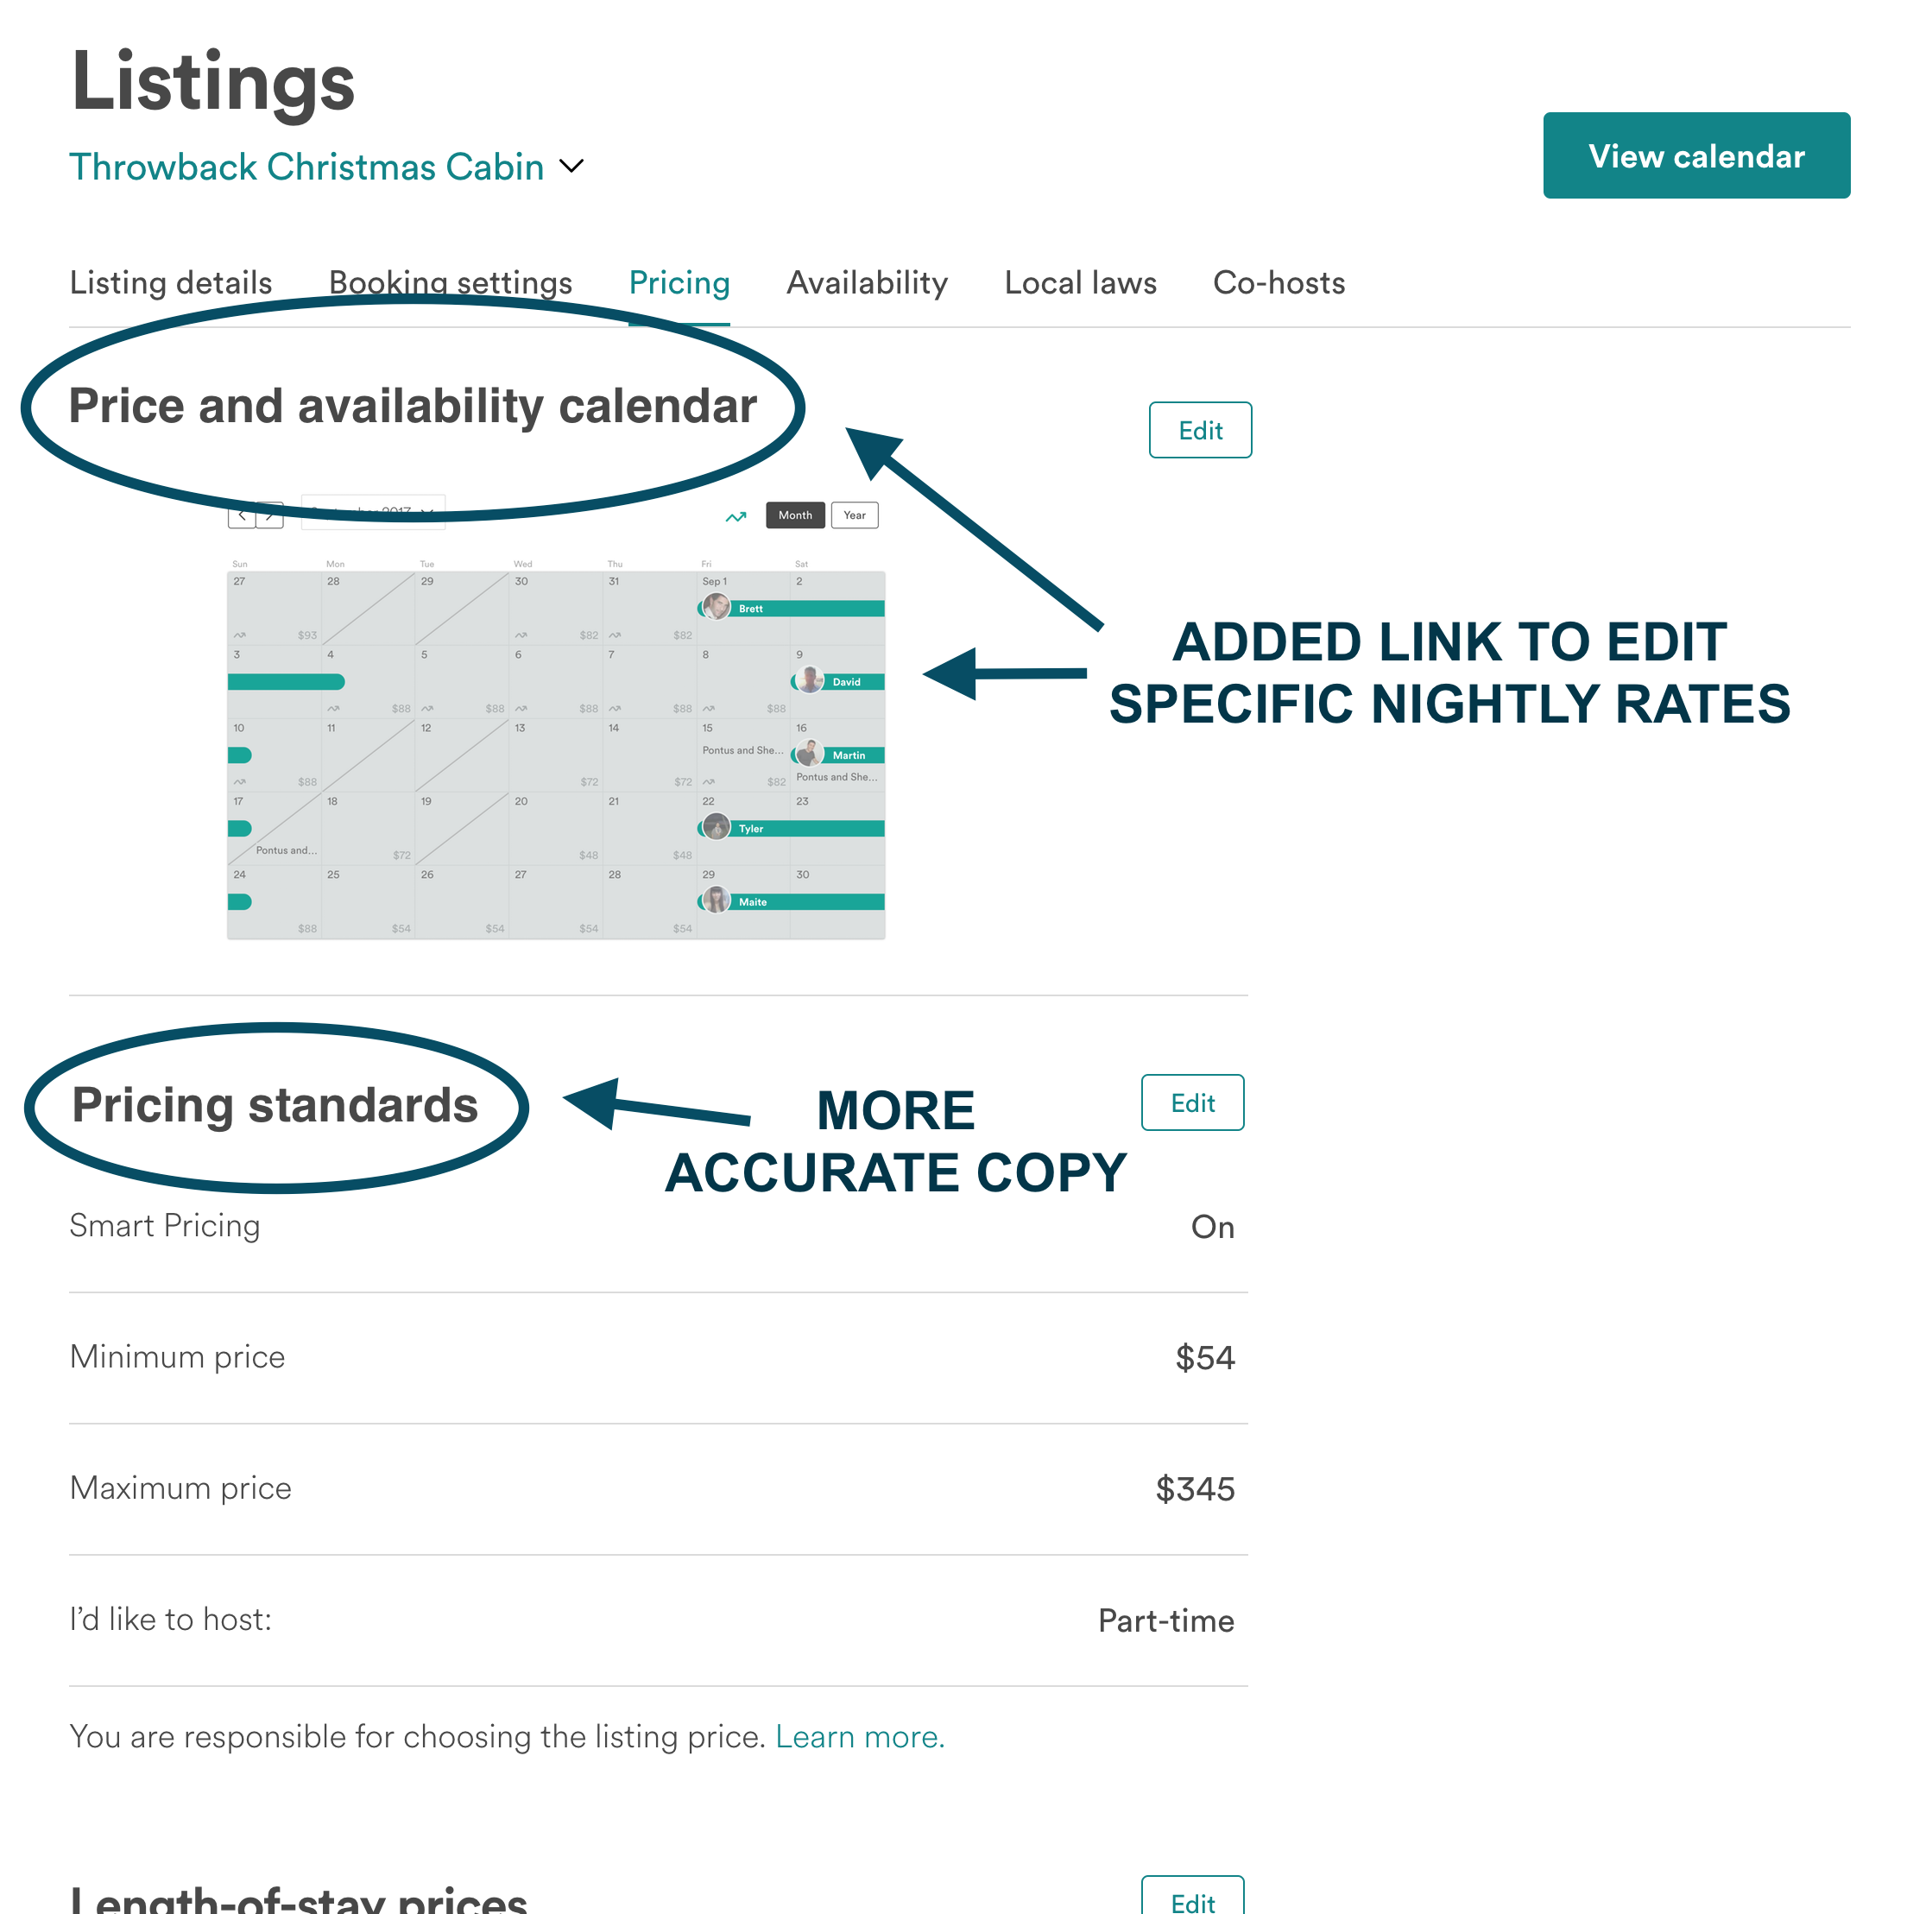 Pricing Settings: UX Update - The updated design improves the user experience by clarifying existing functionality: